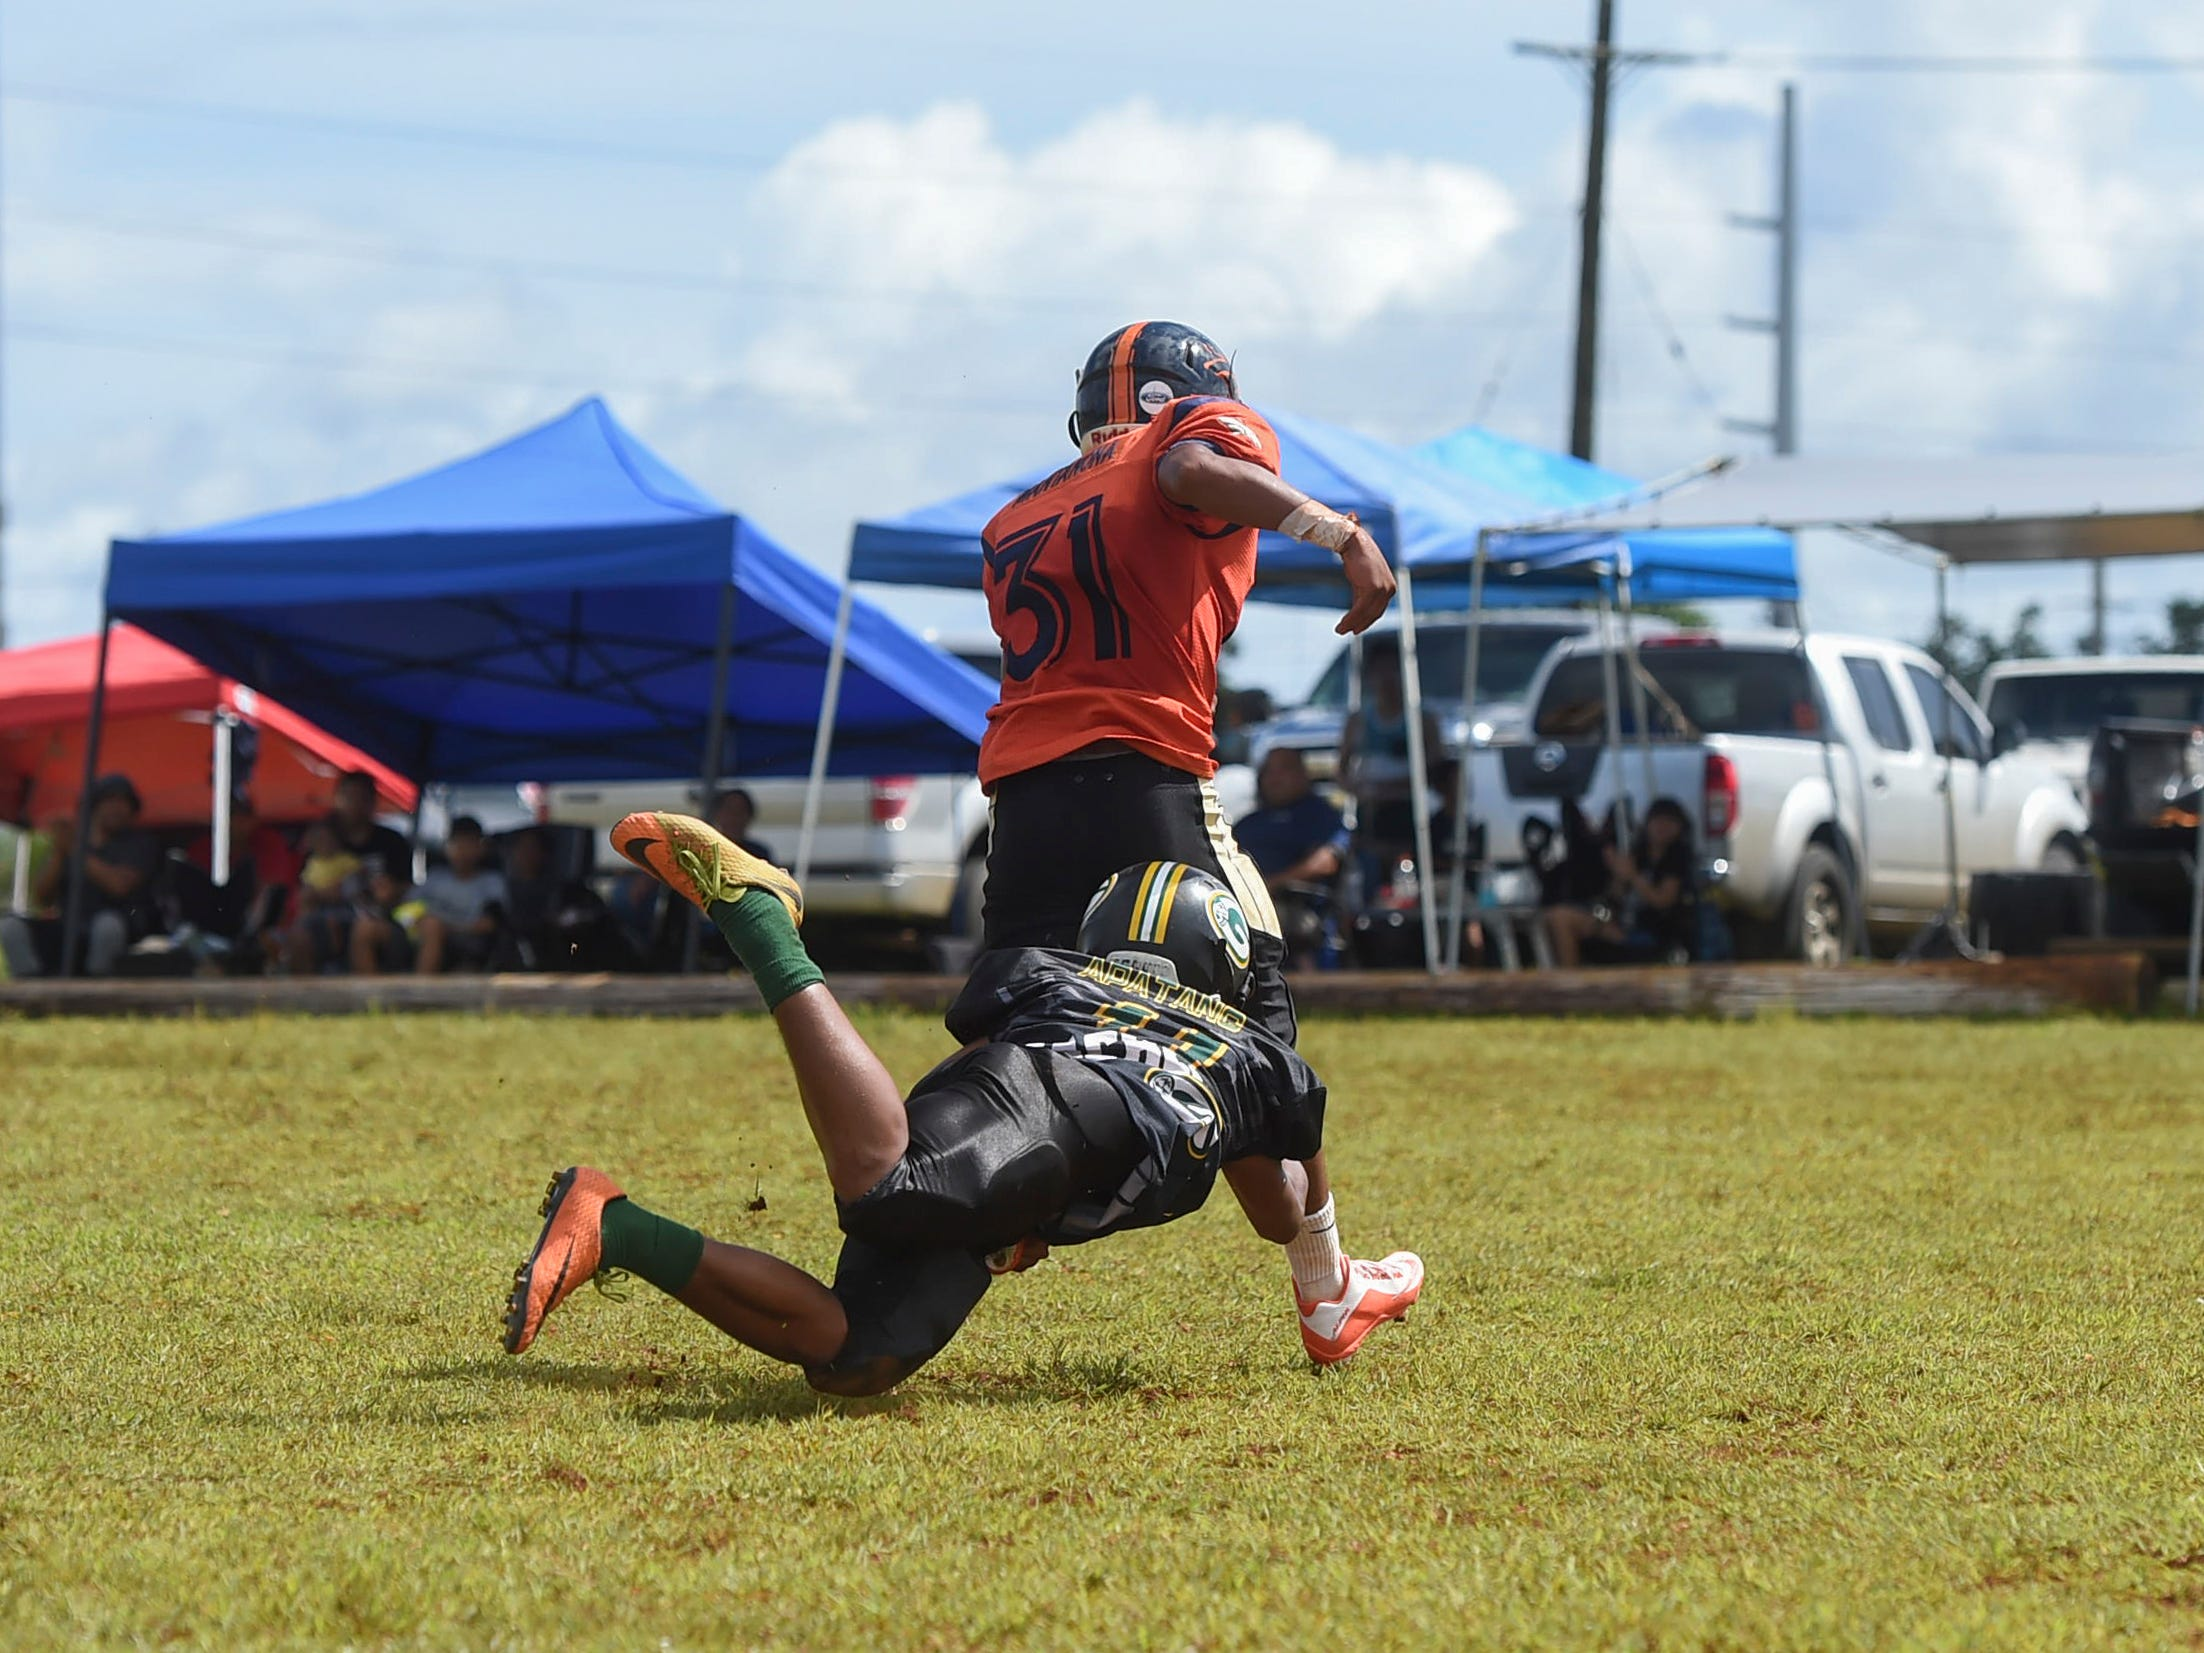 Guam Packers player Dreyvin Apatang (11) dives for a tackle on the Broncos' Francisco Mantanona (31) during a Guam National Youth Football Federation Matua division game at the Mikkel Tan I. Vy Field in Tiyan, Sept. 2, 2018.